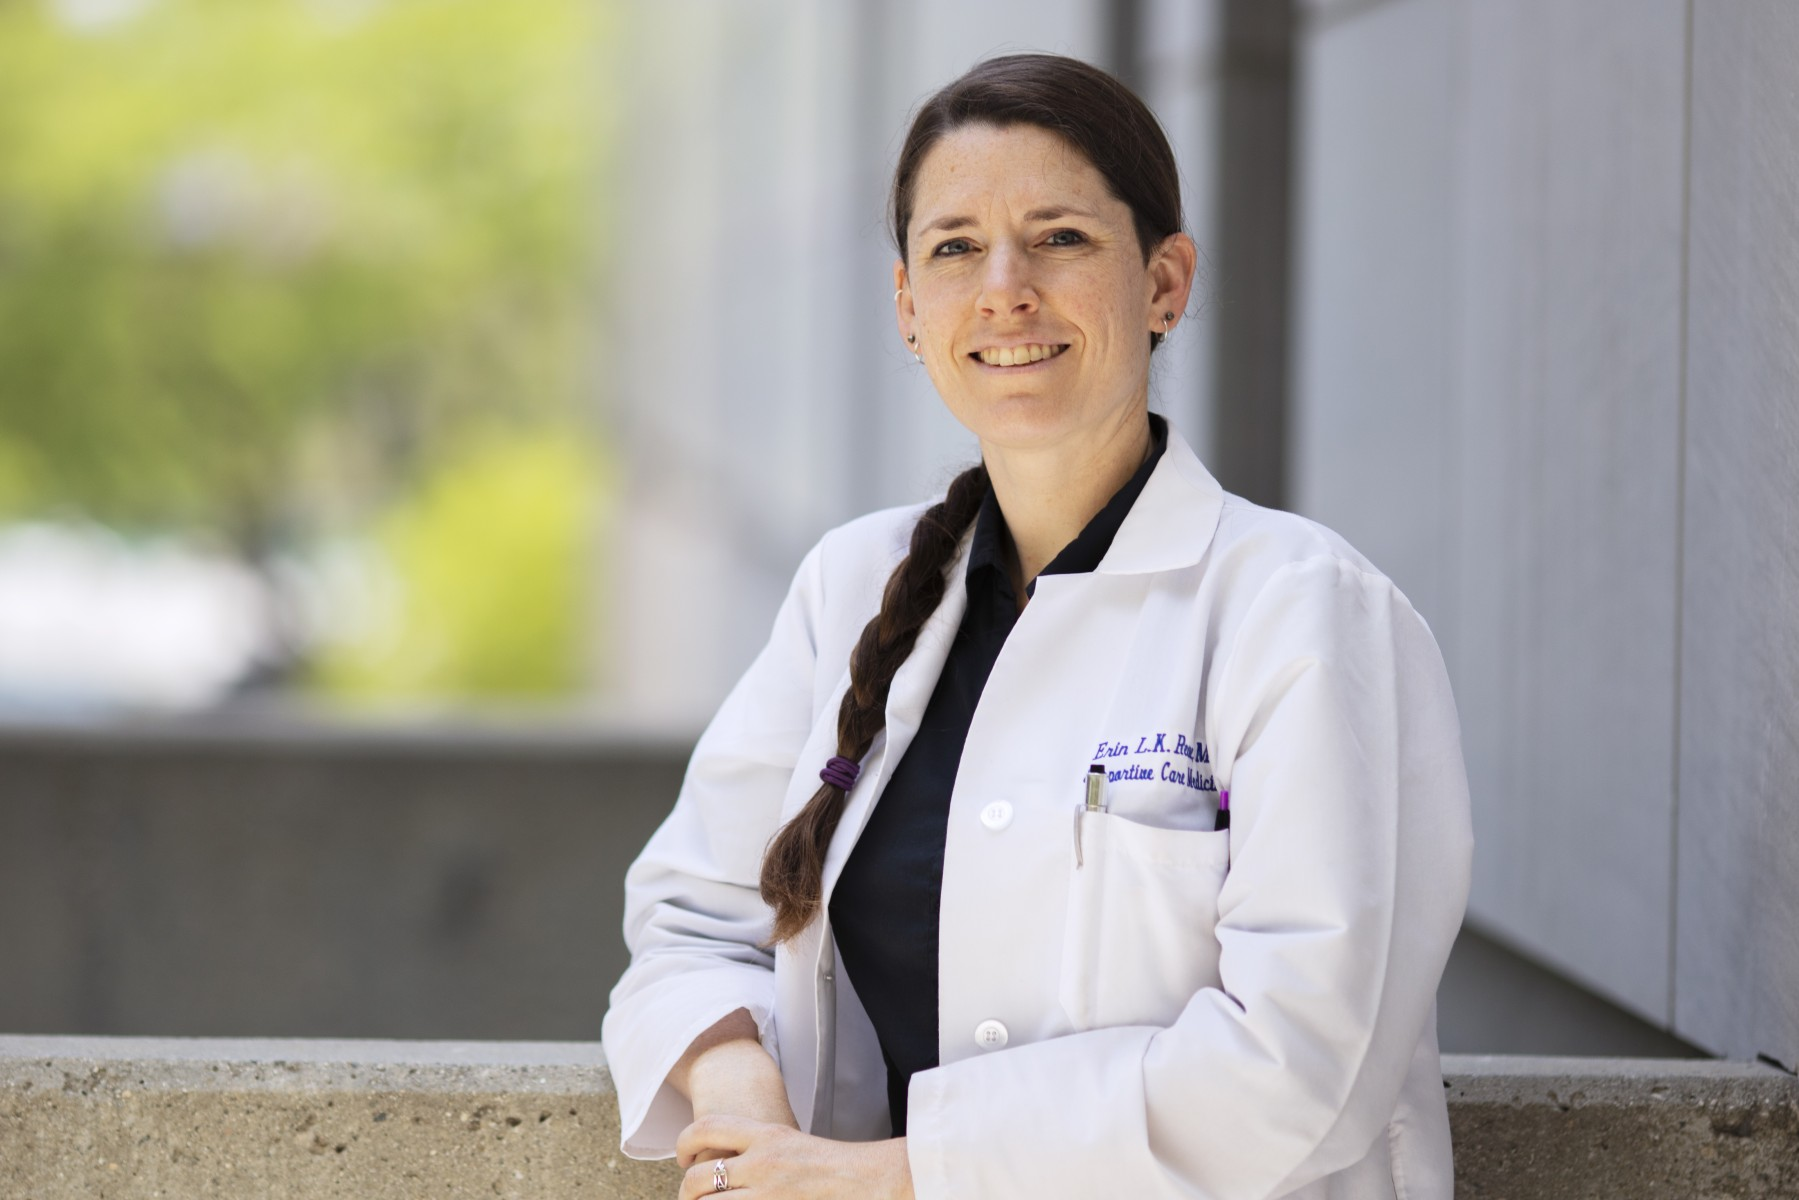 Erin Reeve, MD, a palliative care physician, is hosting a virtual forum where COVID-19 caregivers can share their feelings as well as their creativity. Photo by Cedars-Sinai.